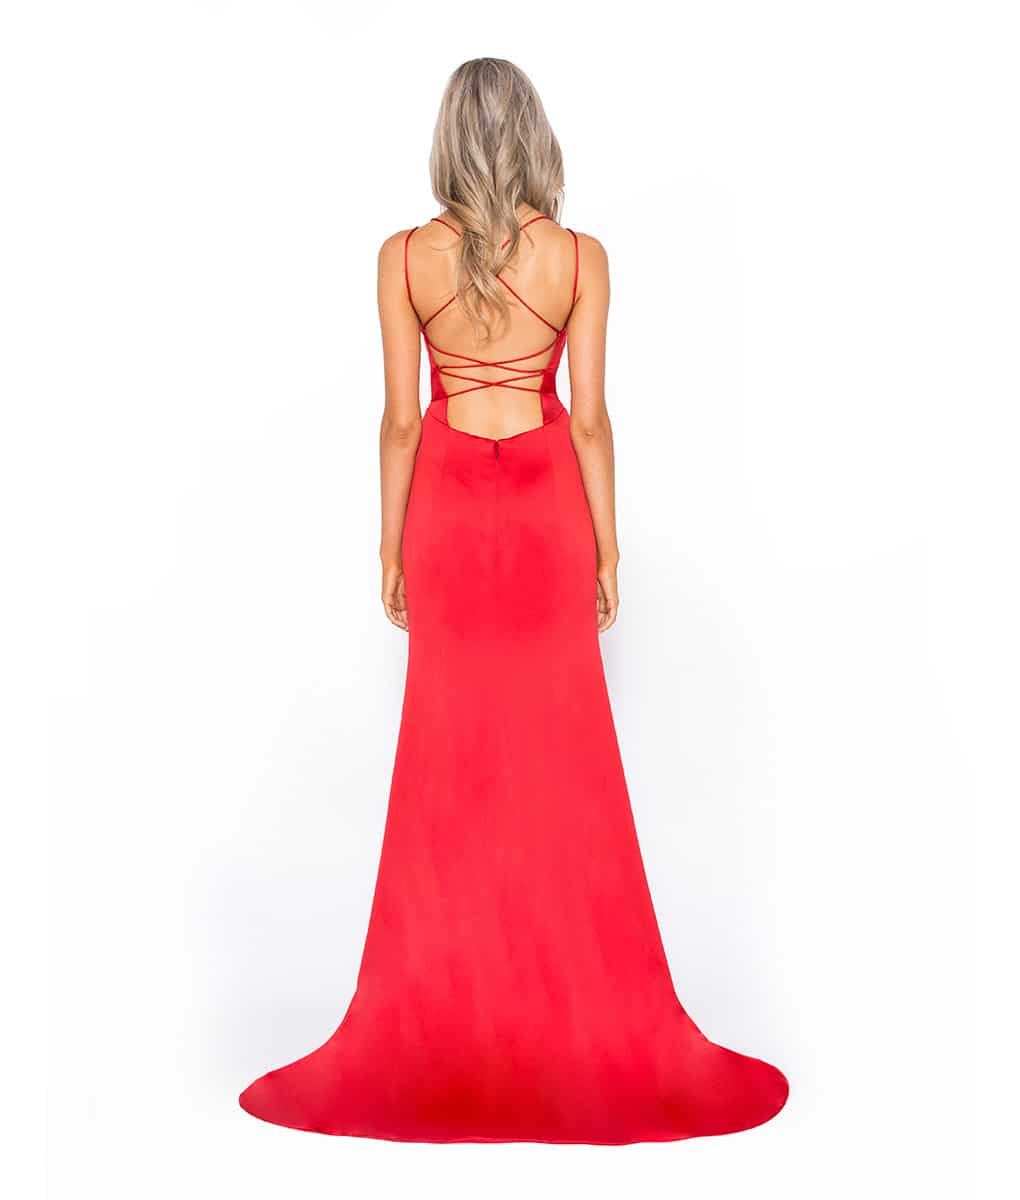 Alila-Red-Satin-Debs-Open-Back-Dress-Bariano